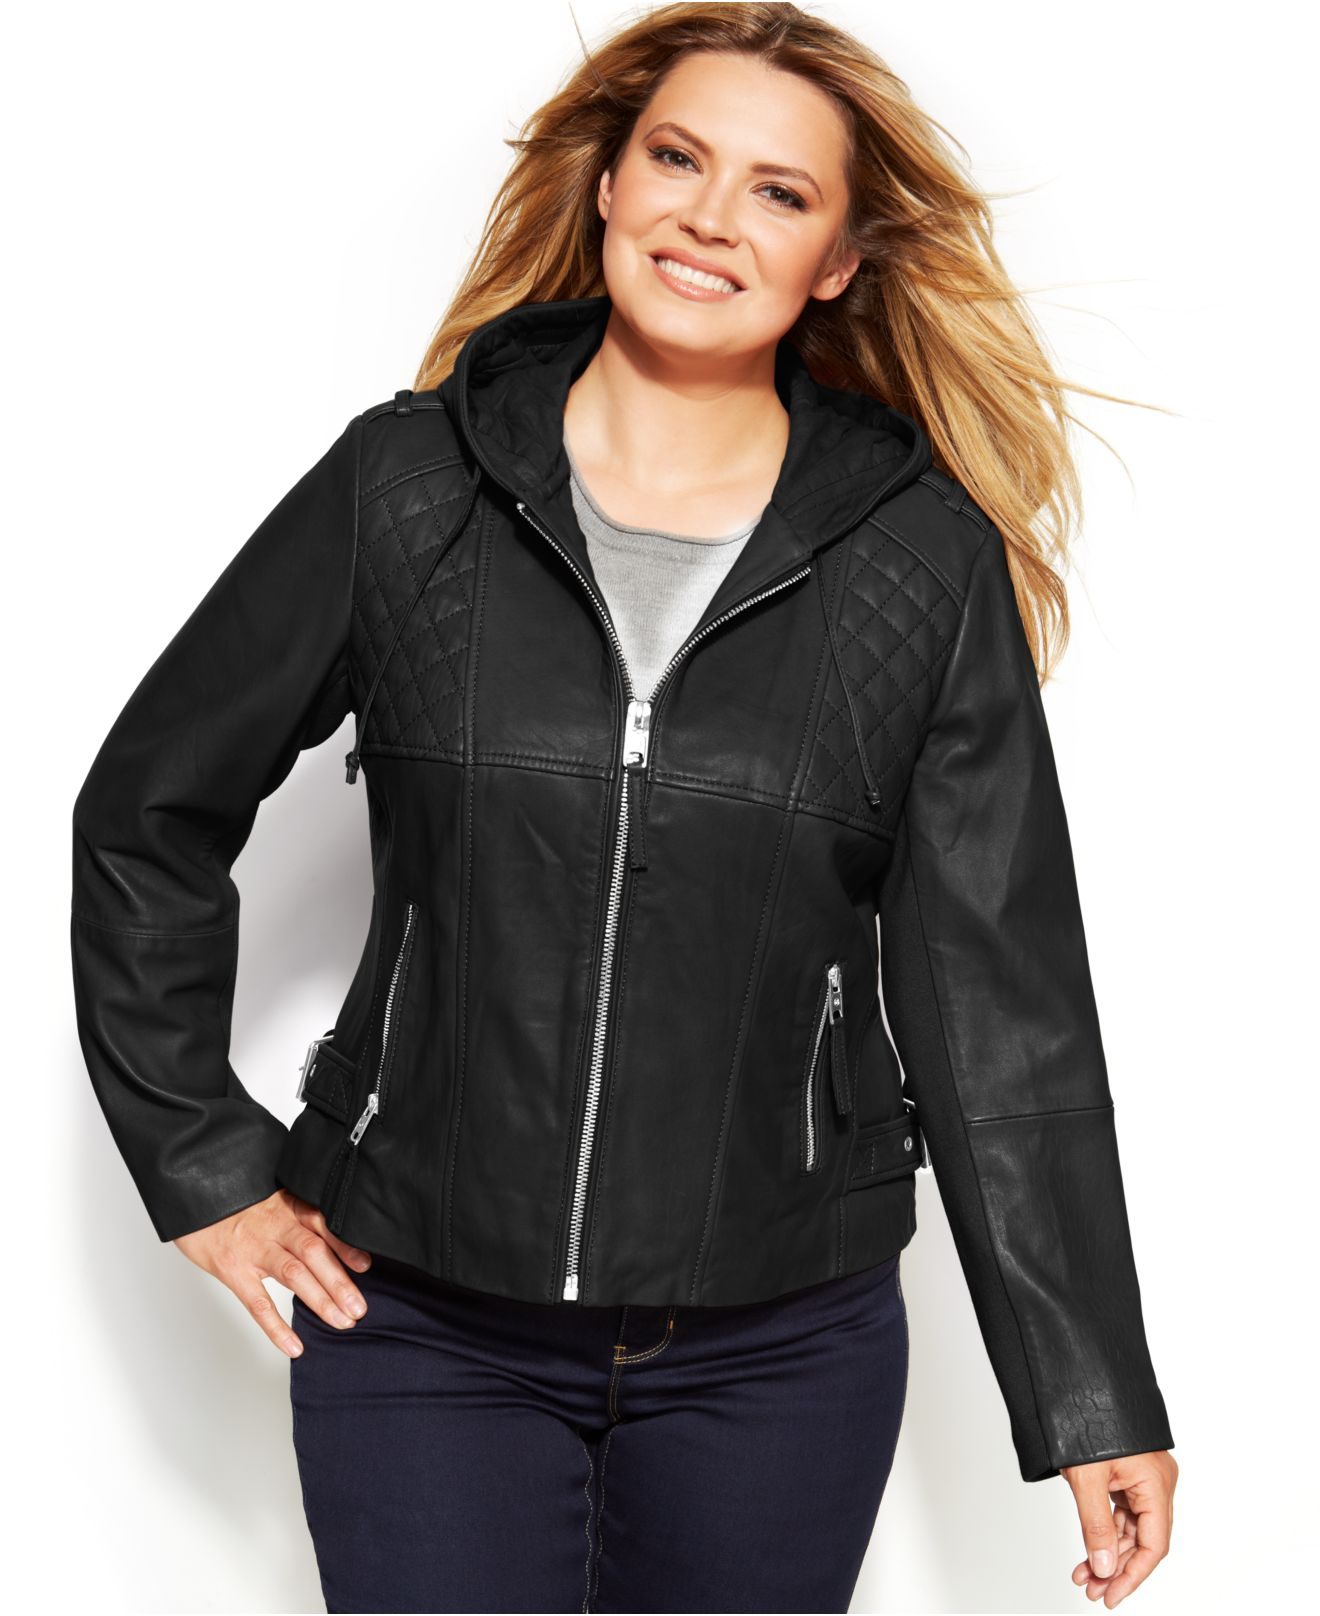 6a5998e35e6 Michael Kors Michael Plus Size Knit-Inset Hooded Leather Jacket in ...